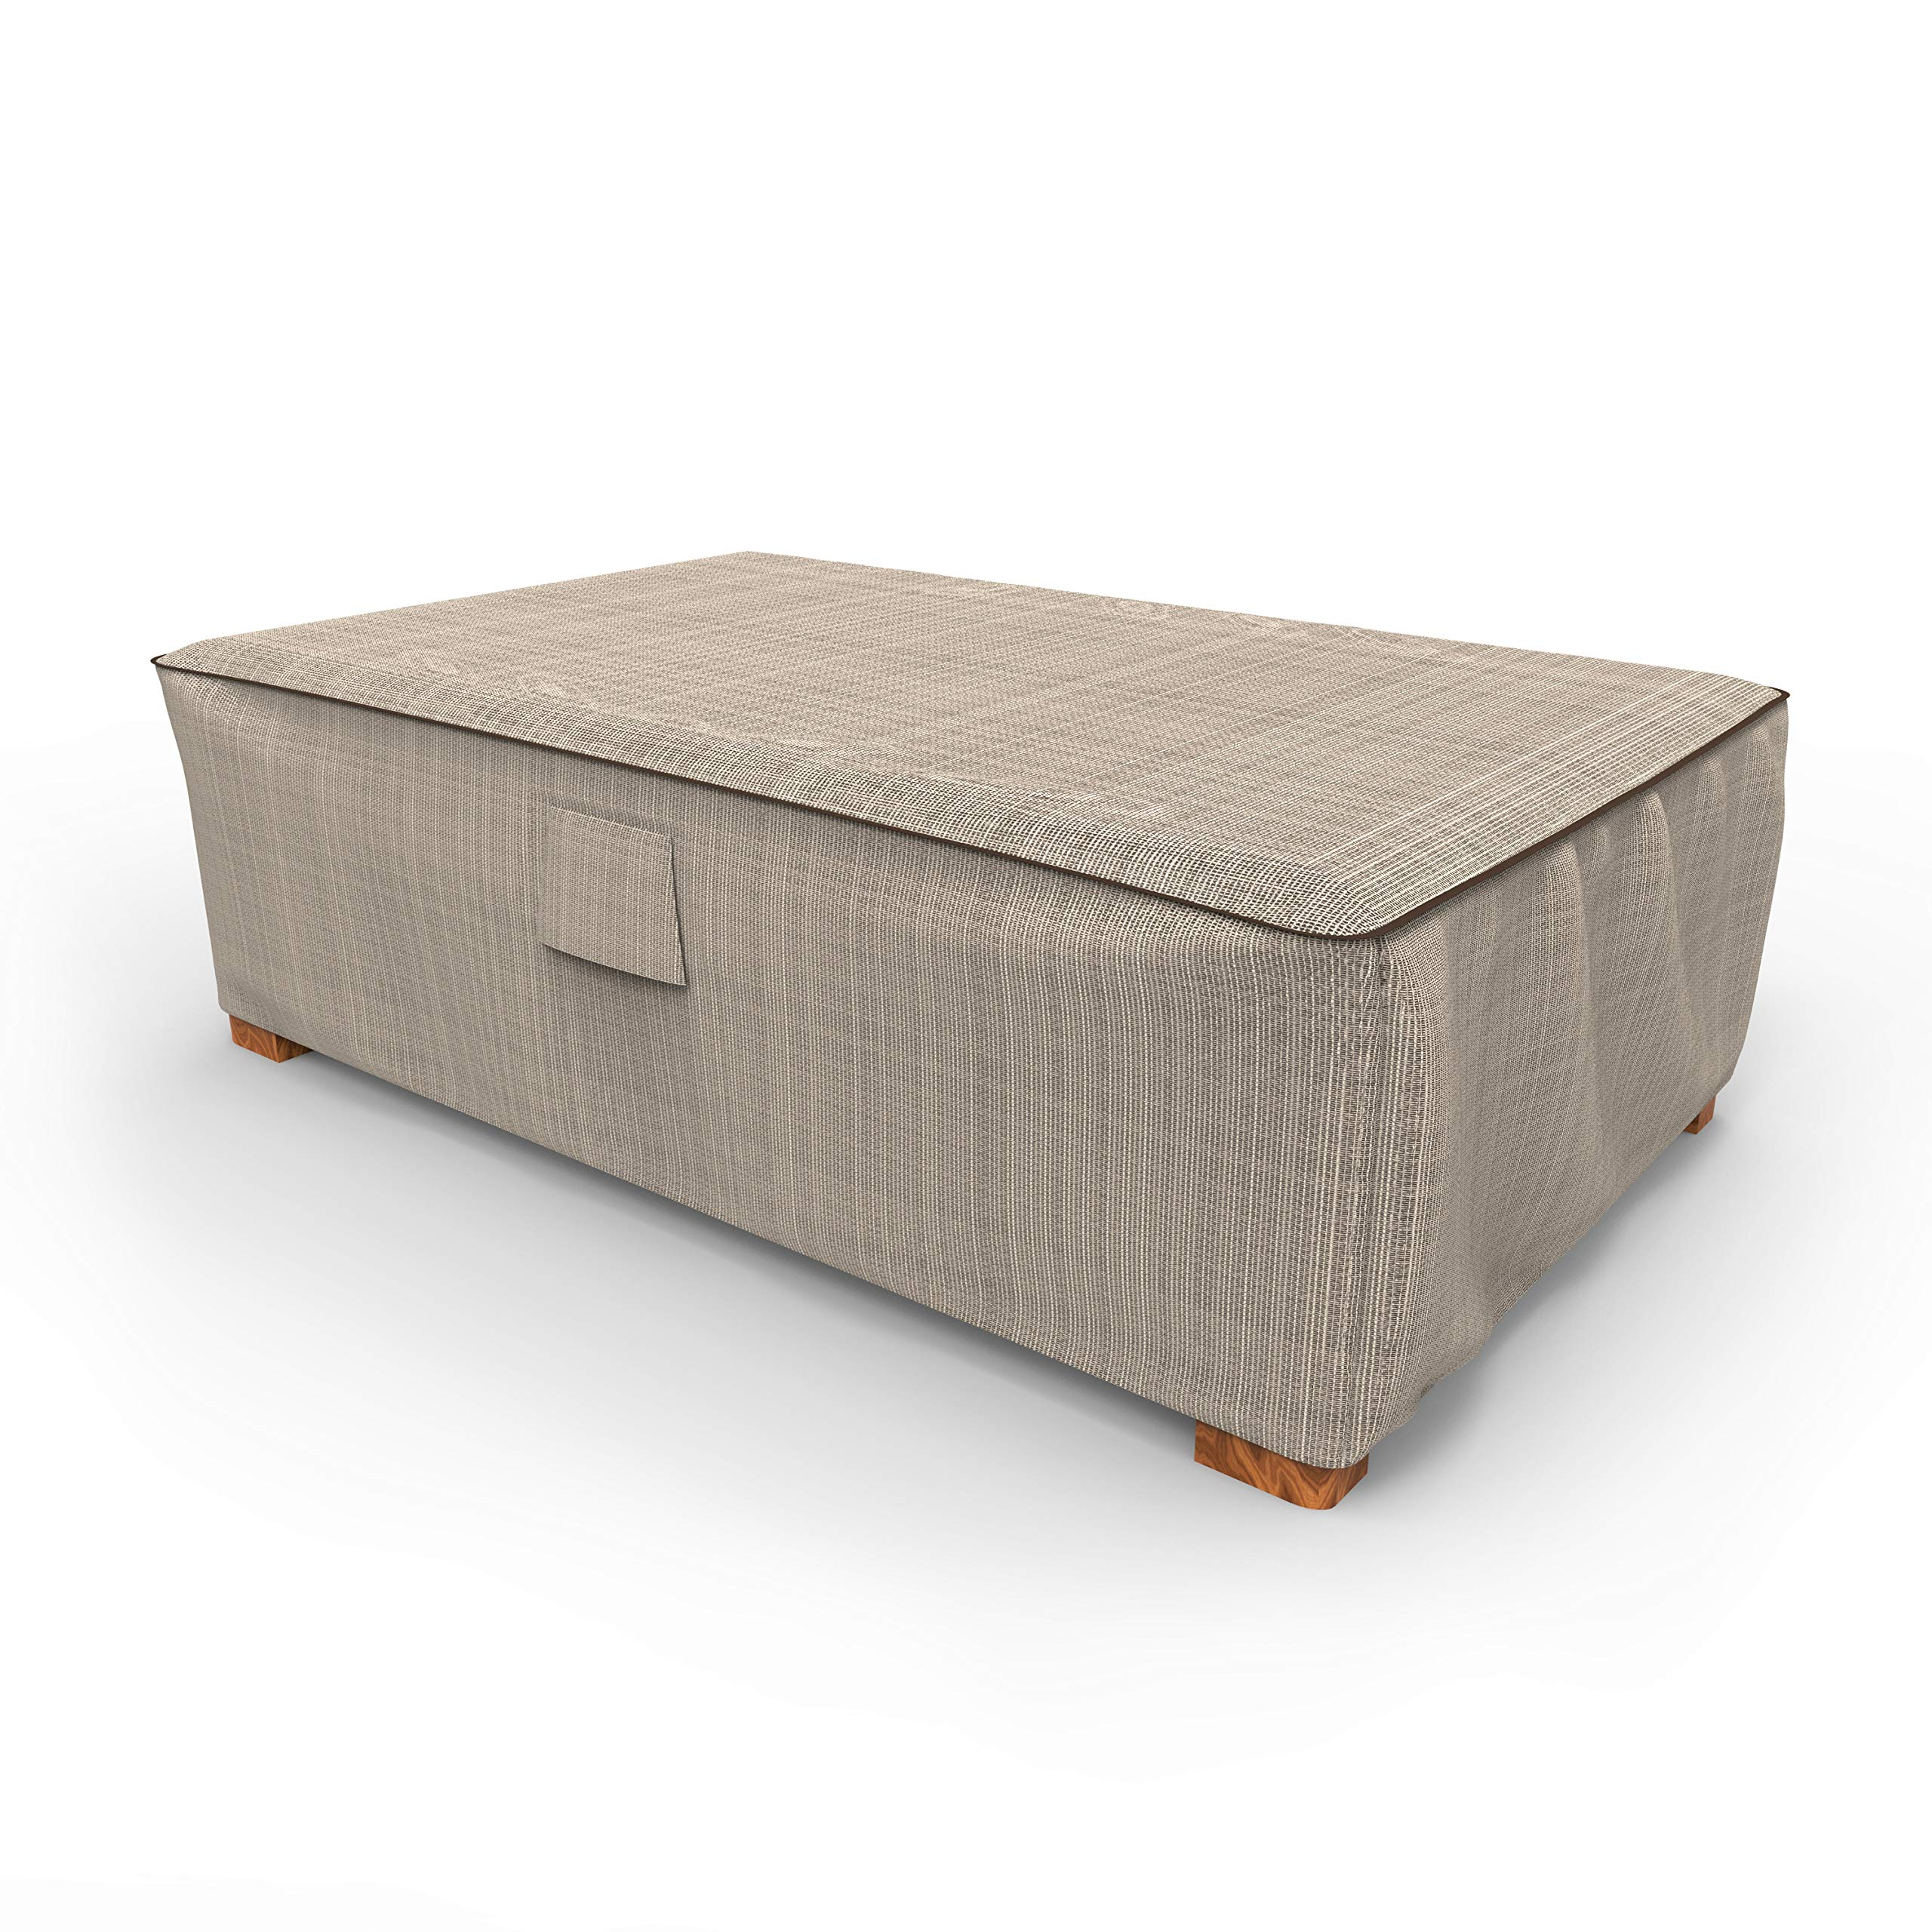 NeverWet Signature Patio Ottoman Cover/Coffee Table Cover, Large - Black Ivory, P5A36PMNW2